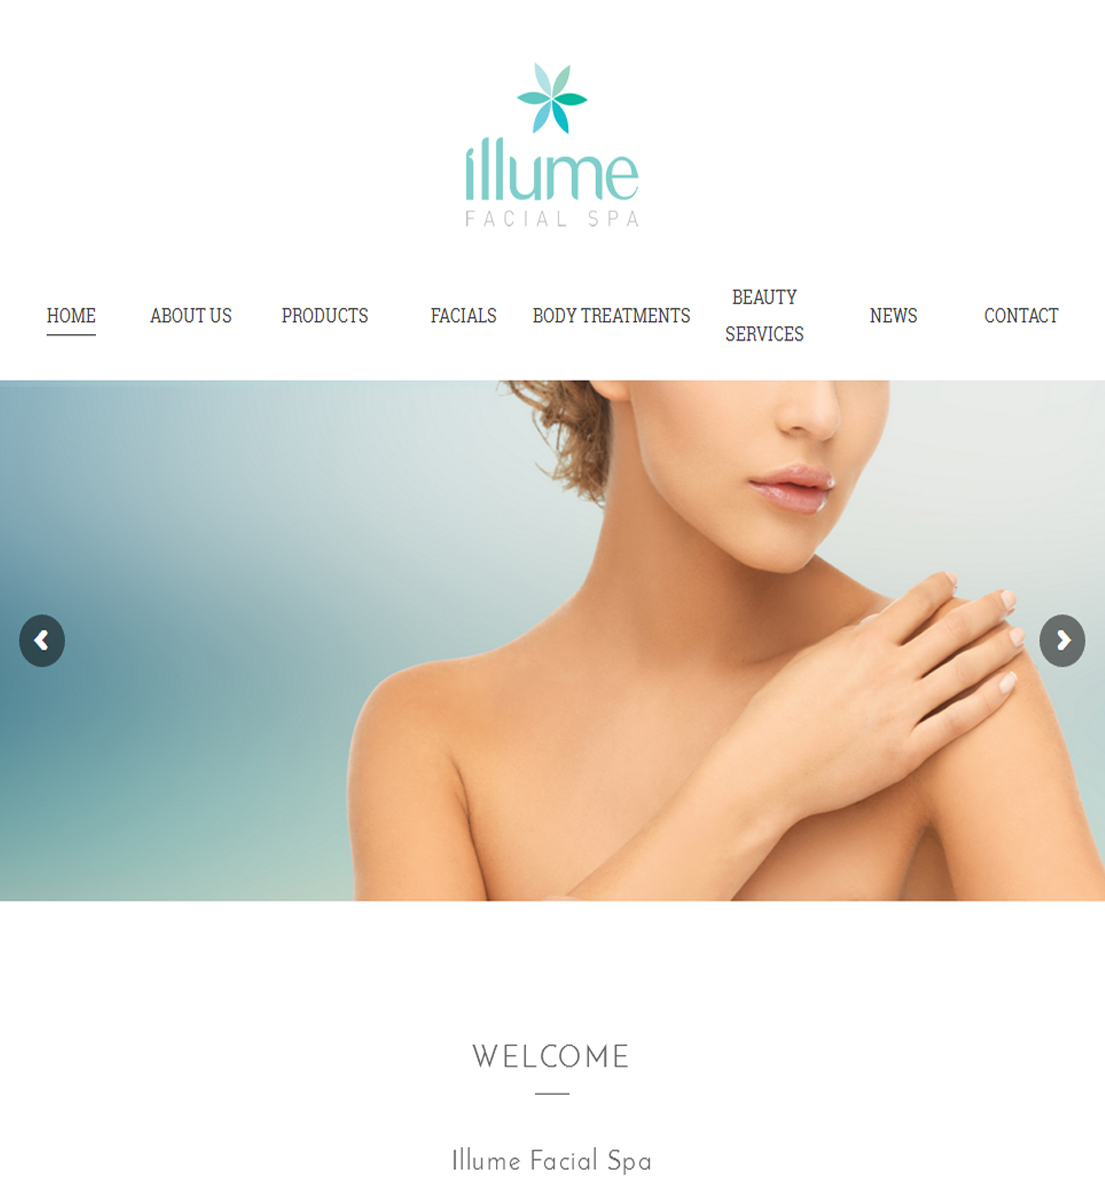 Illume Facial Spa